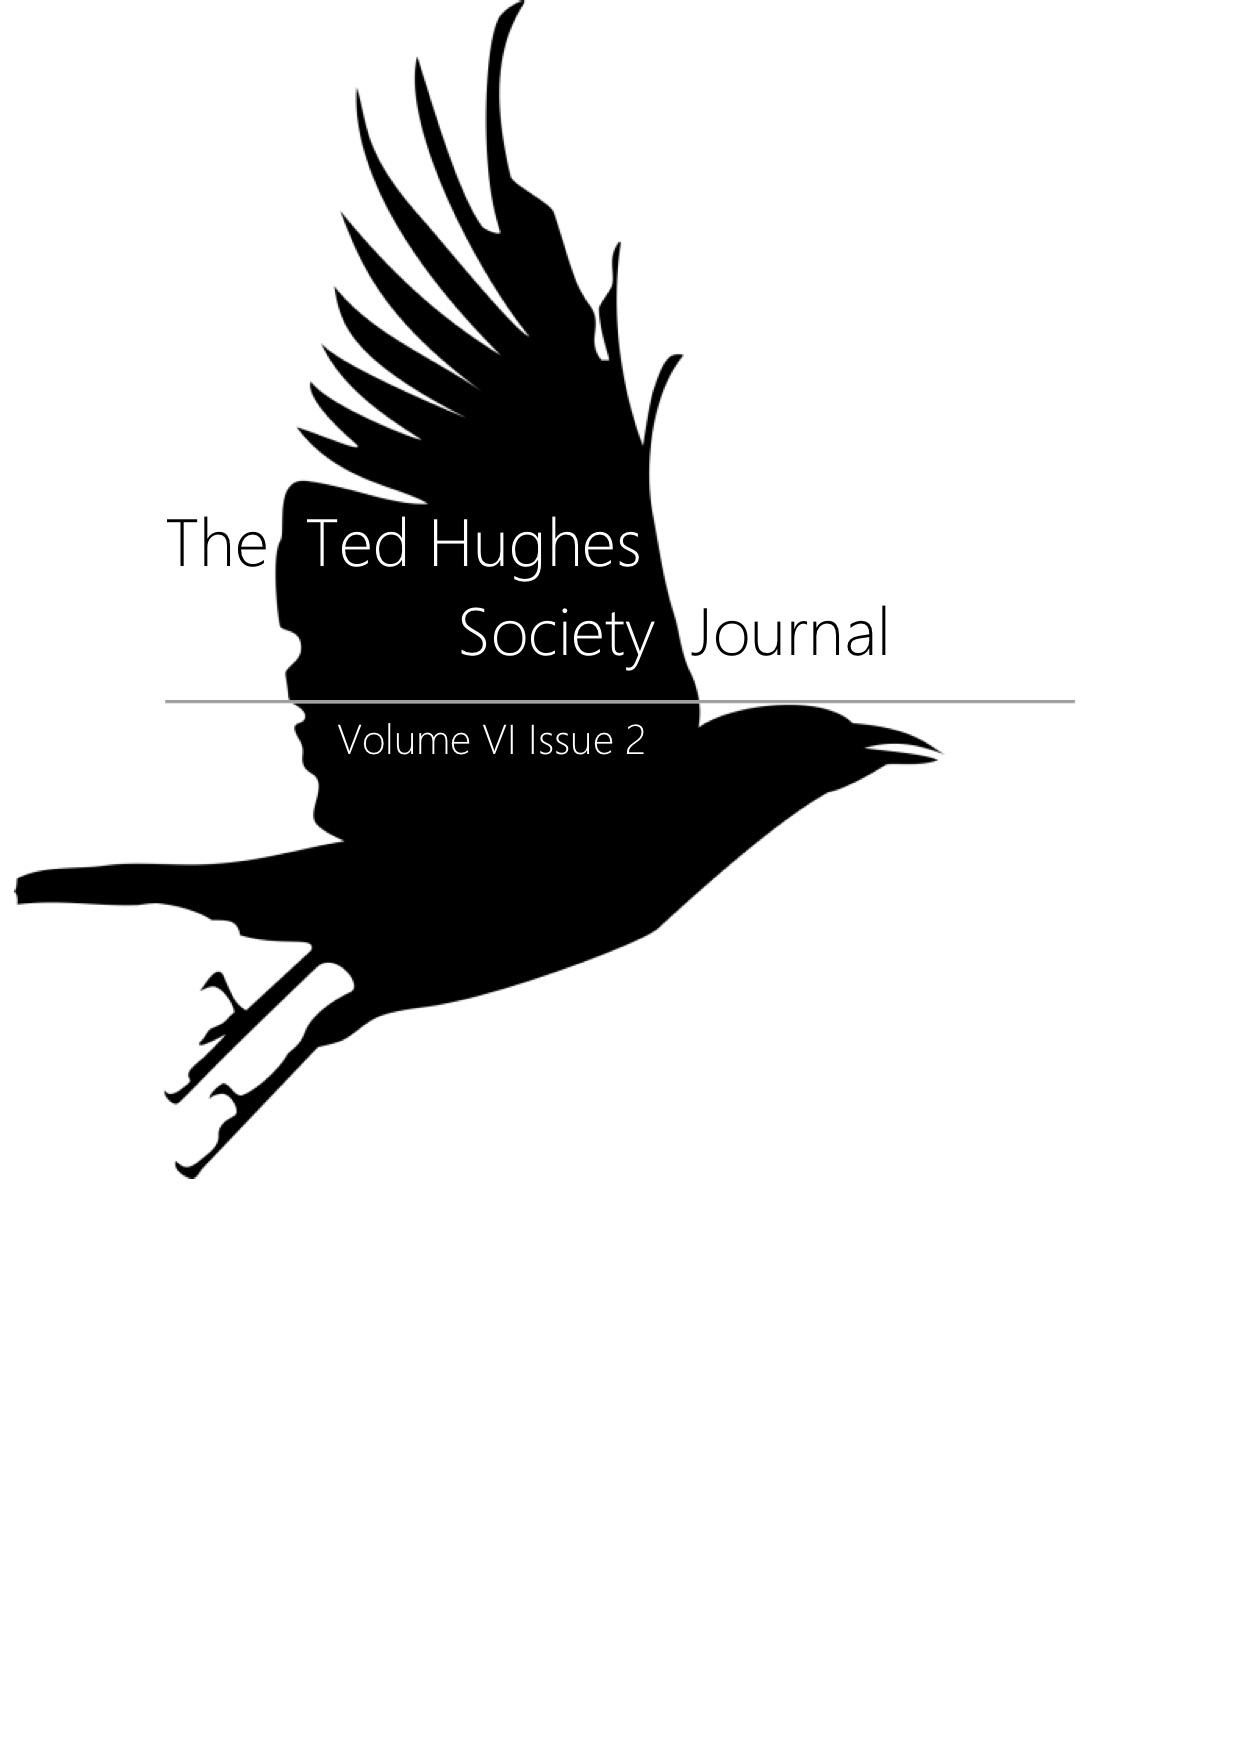 The Ted Hughes Society Journal VI.2 .jpg